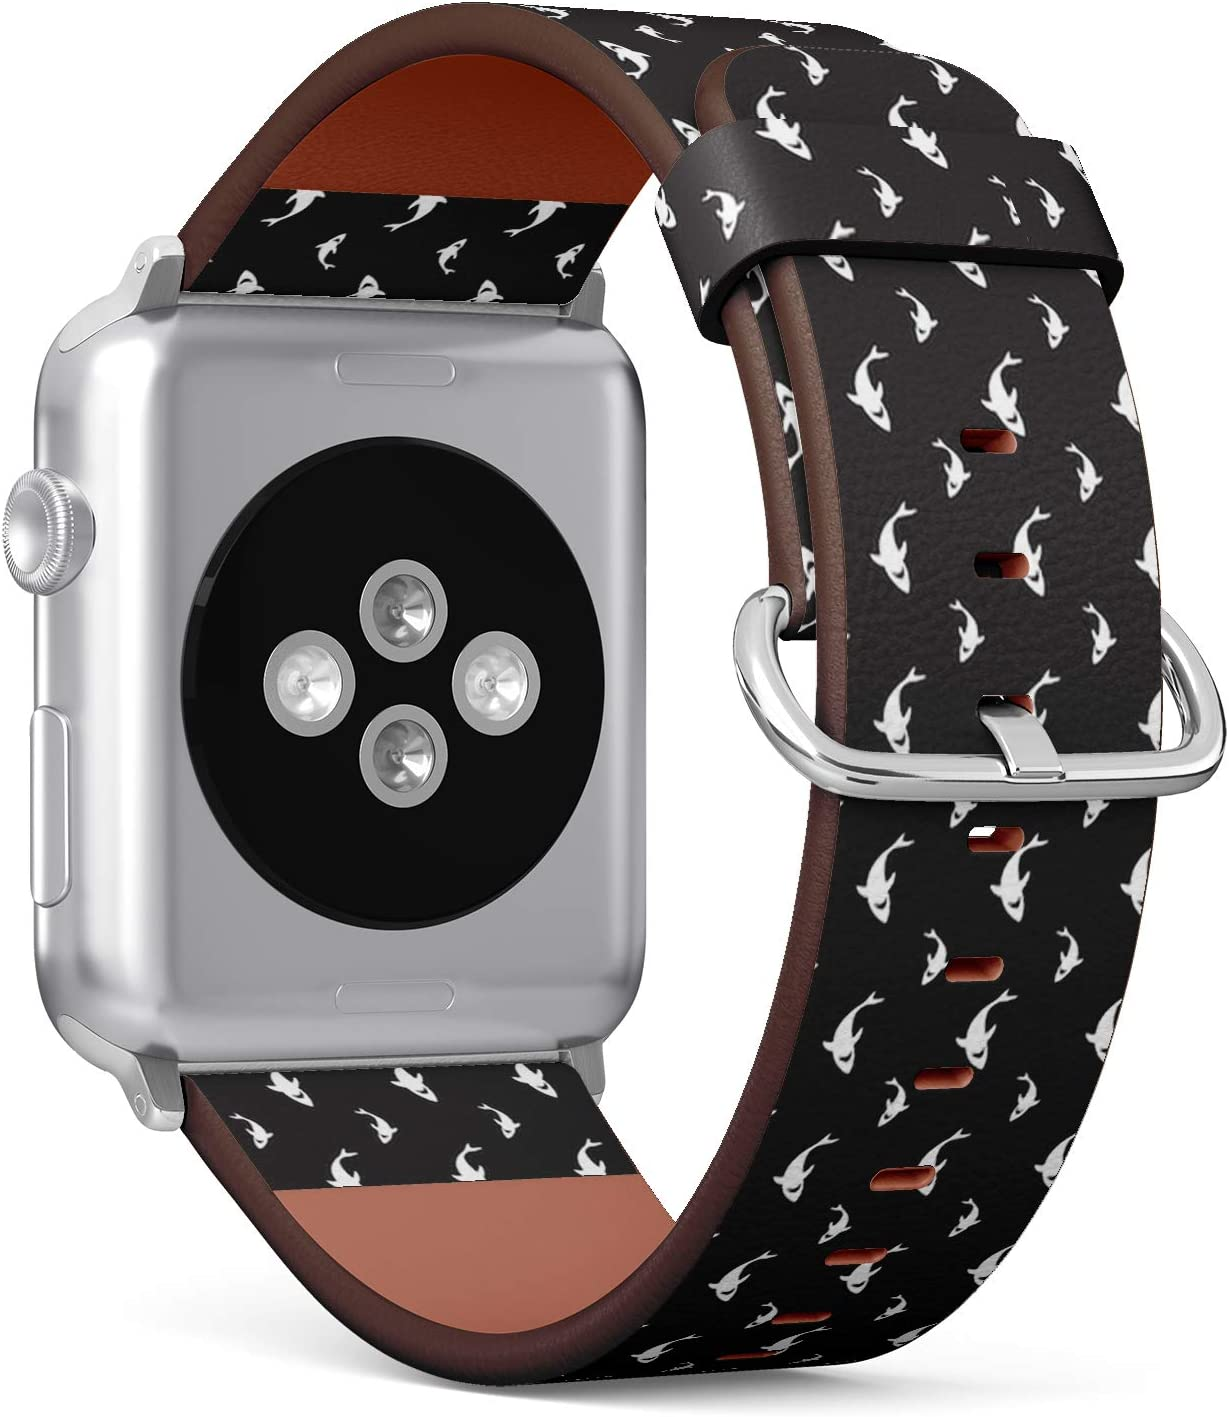 Compatible with Big Apple Watch 42mm & 44mm (Series 5, 4, 3, 2, 1) Leather Watch Wrist Band Strap Bracelet with Stainless Steel Clasp and Adapters (Shark Fin Dolphin)